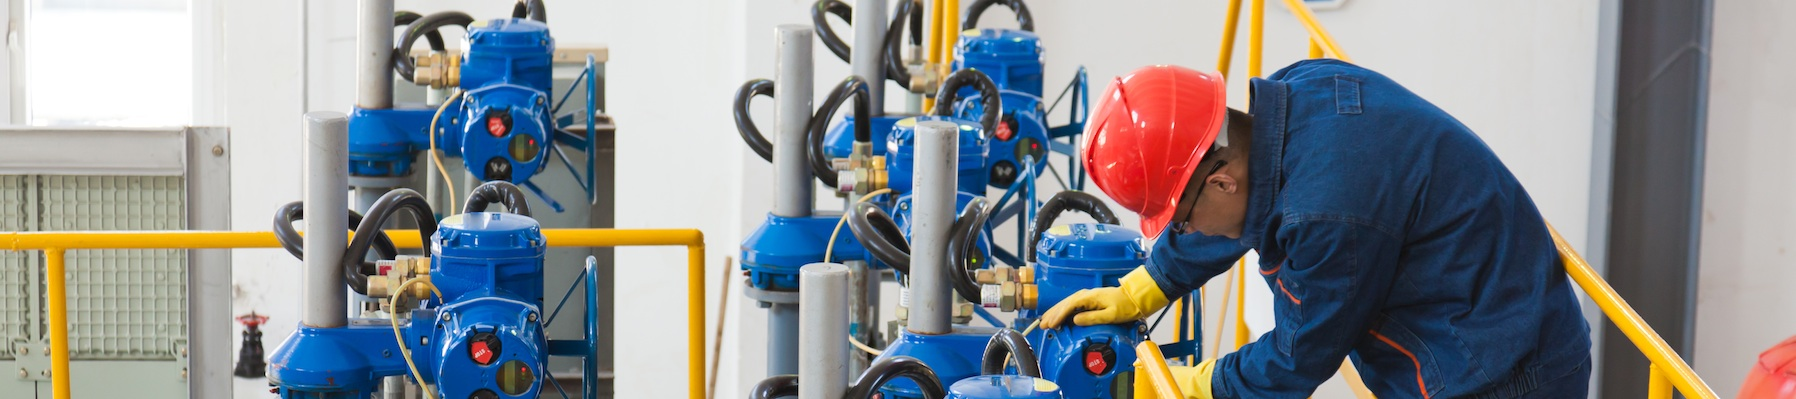 water-treatment-services-texas